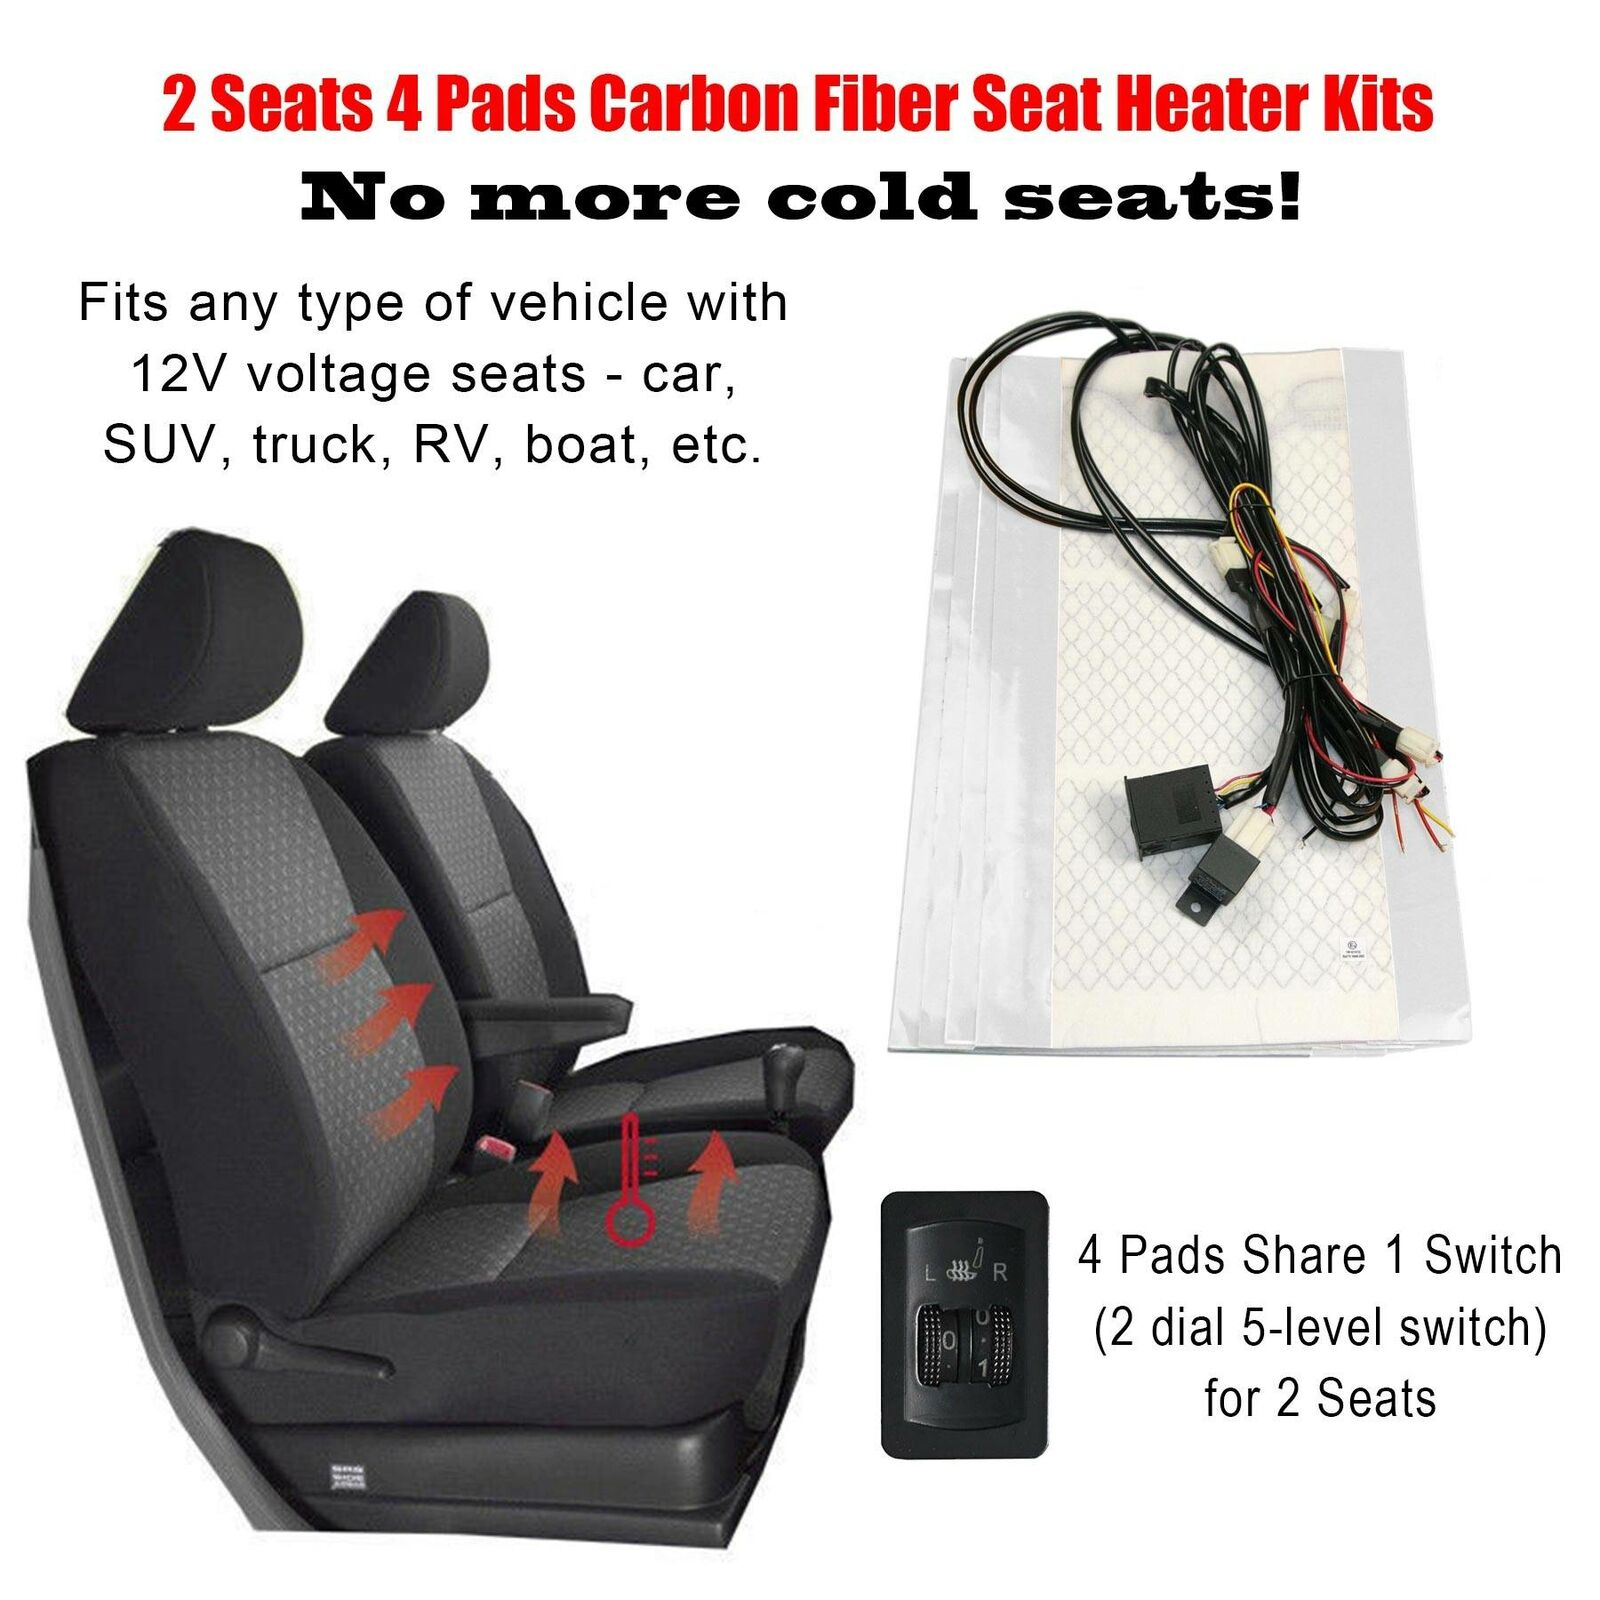 Universal For Car Truck SUV Home Office Chair Pet Heating Pad Heated Car Seat Pad Heated Seat Cushion 5V Car Heat Seat Cushions For Cold Weather And Winter